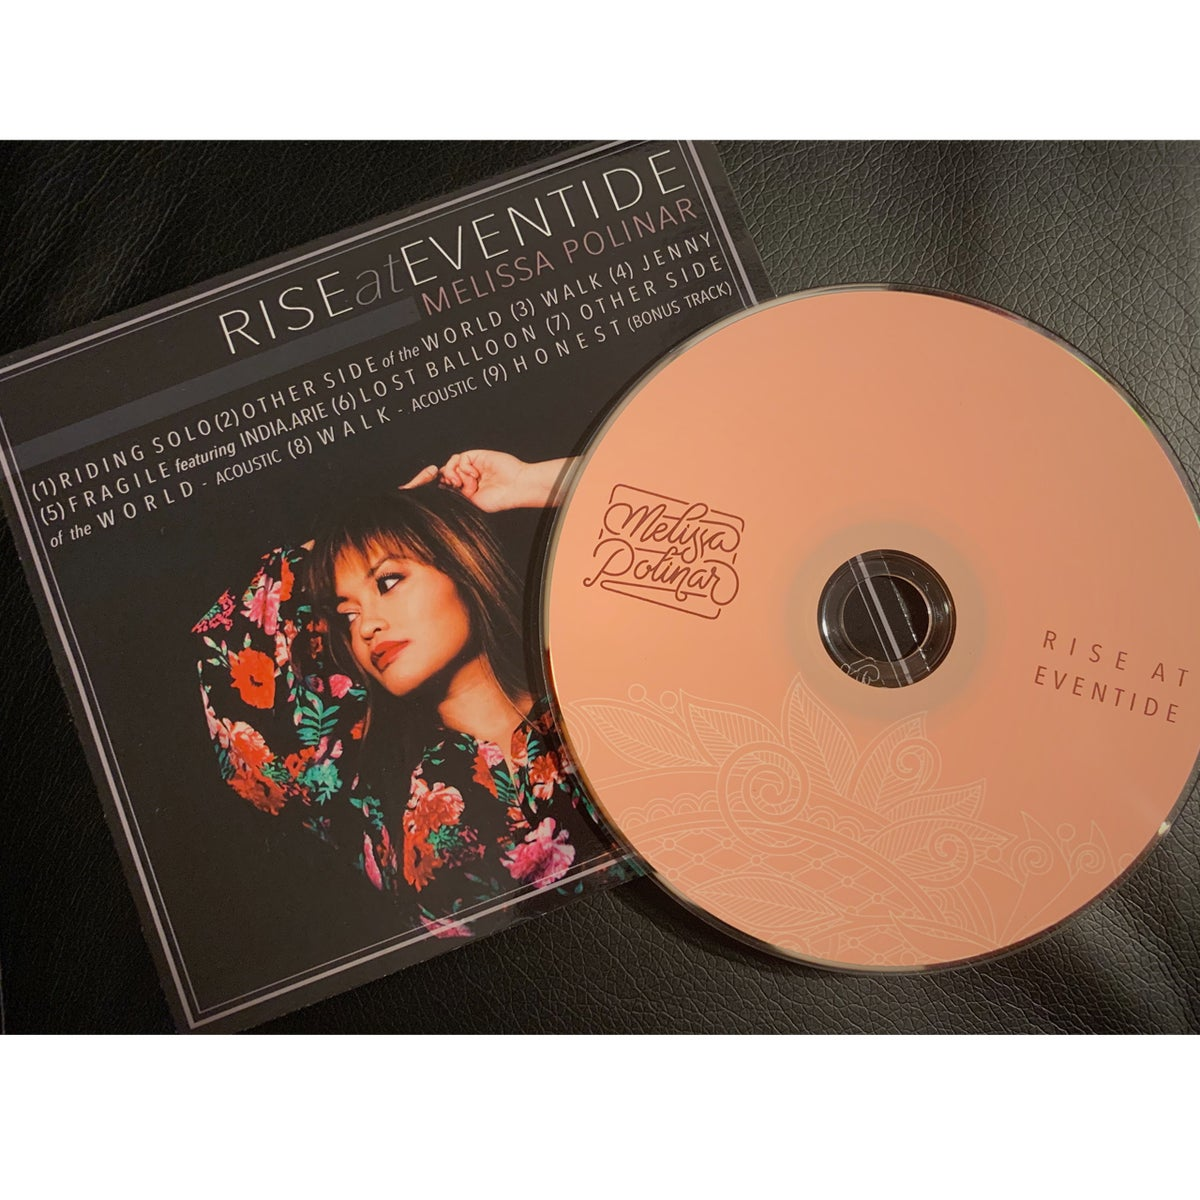 Image of CD: Rise At Eventide